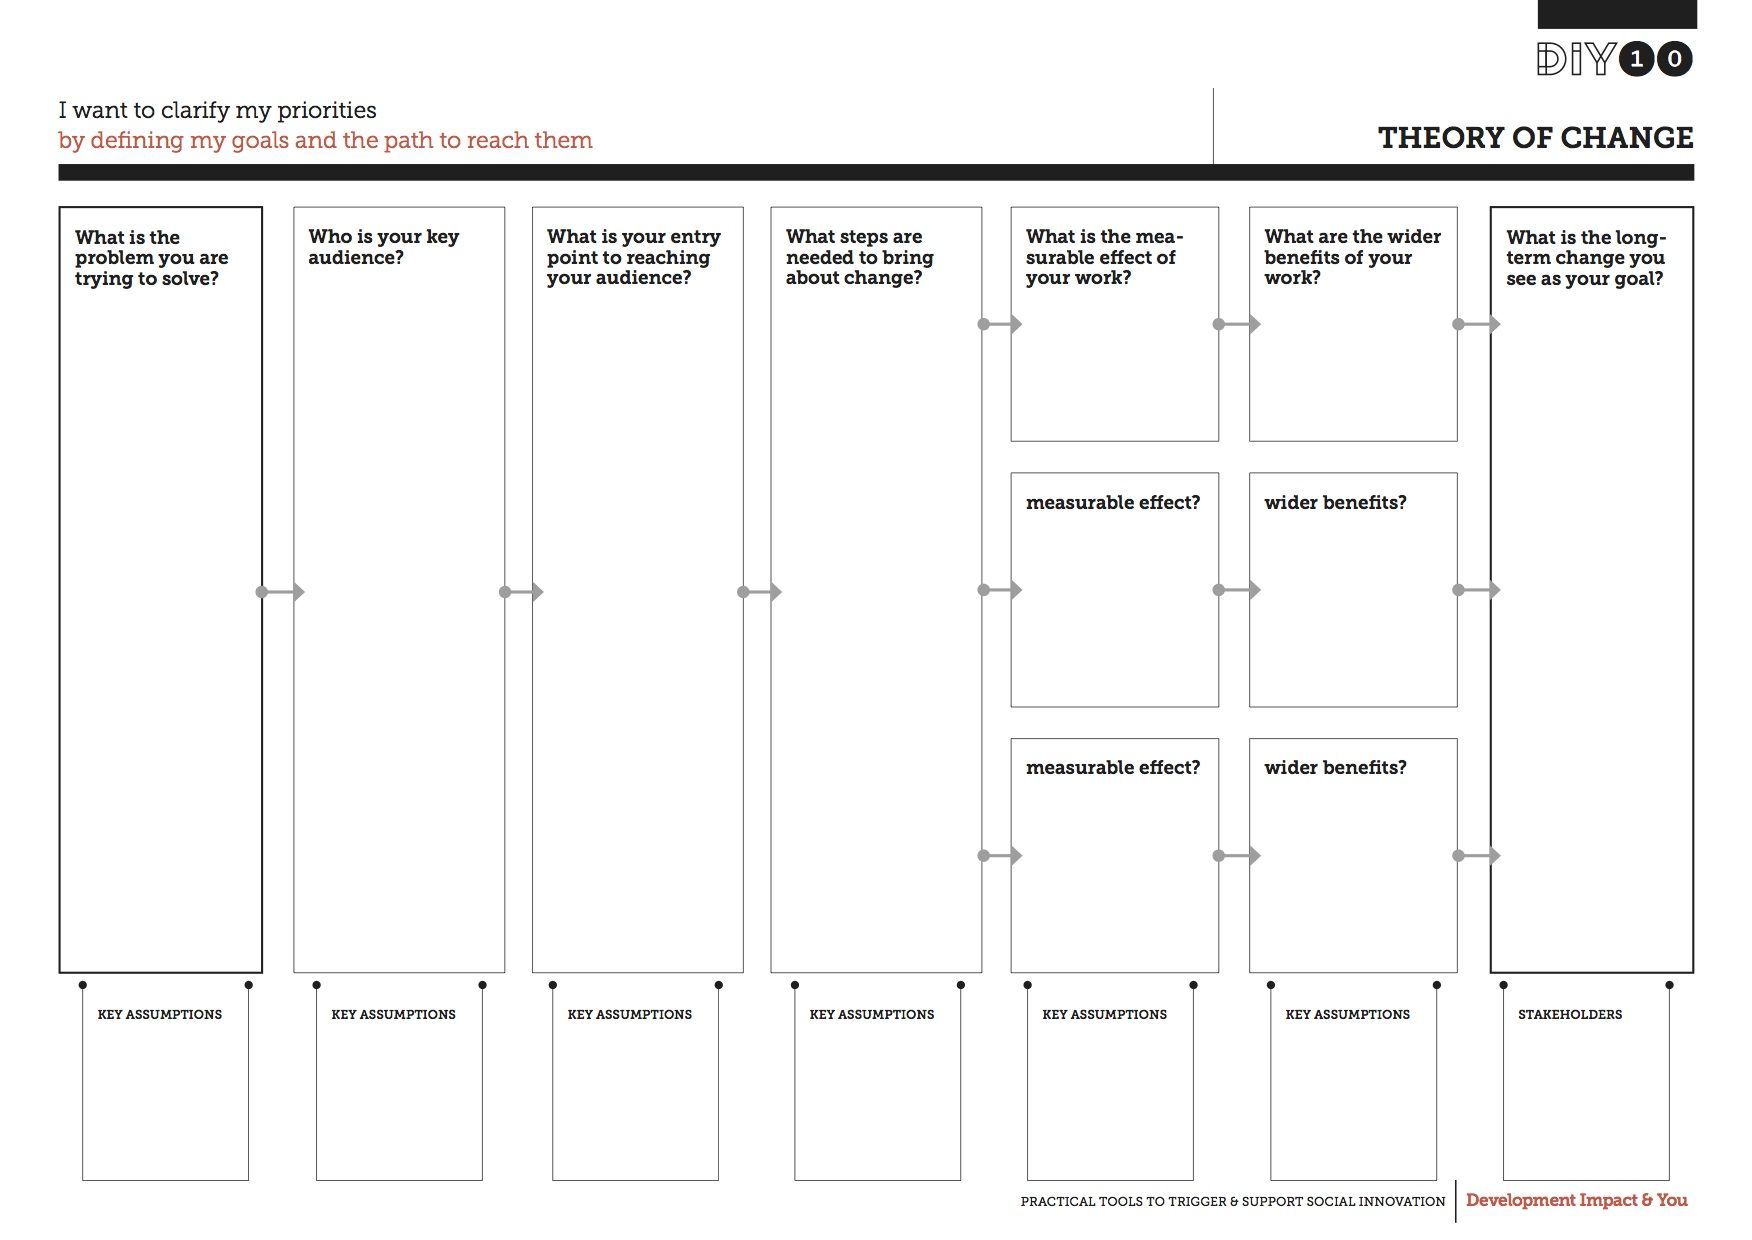 Theory Of Change By Diytoolkit